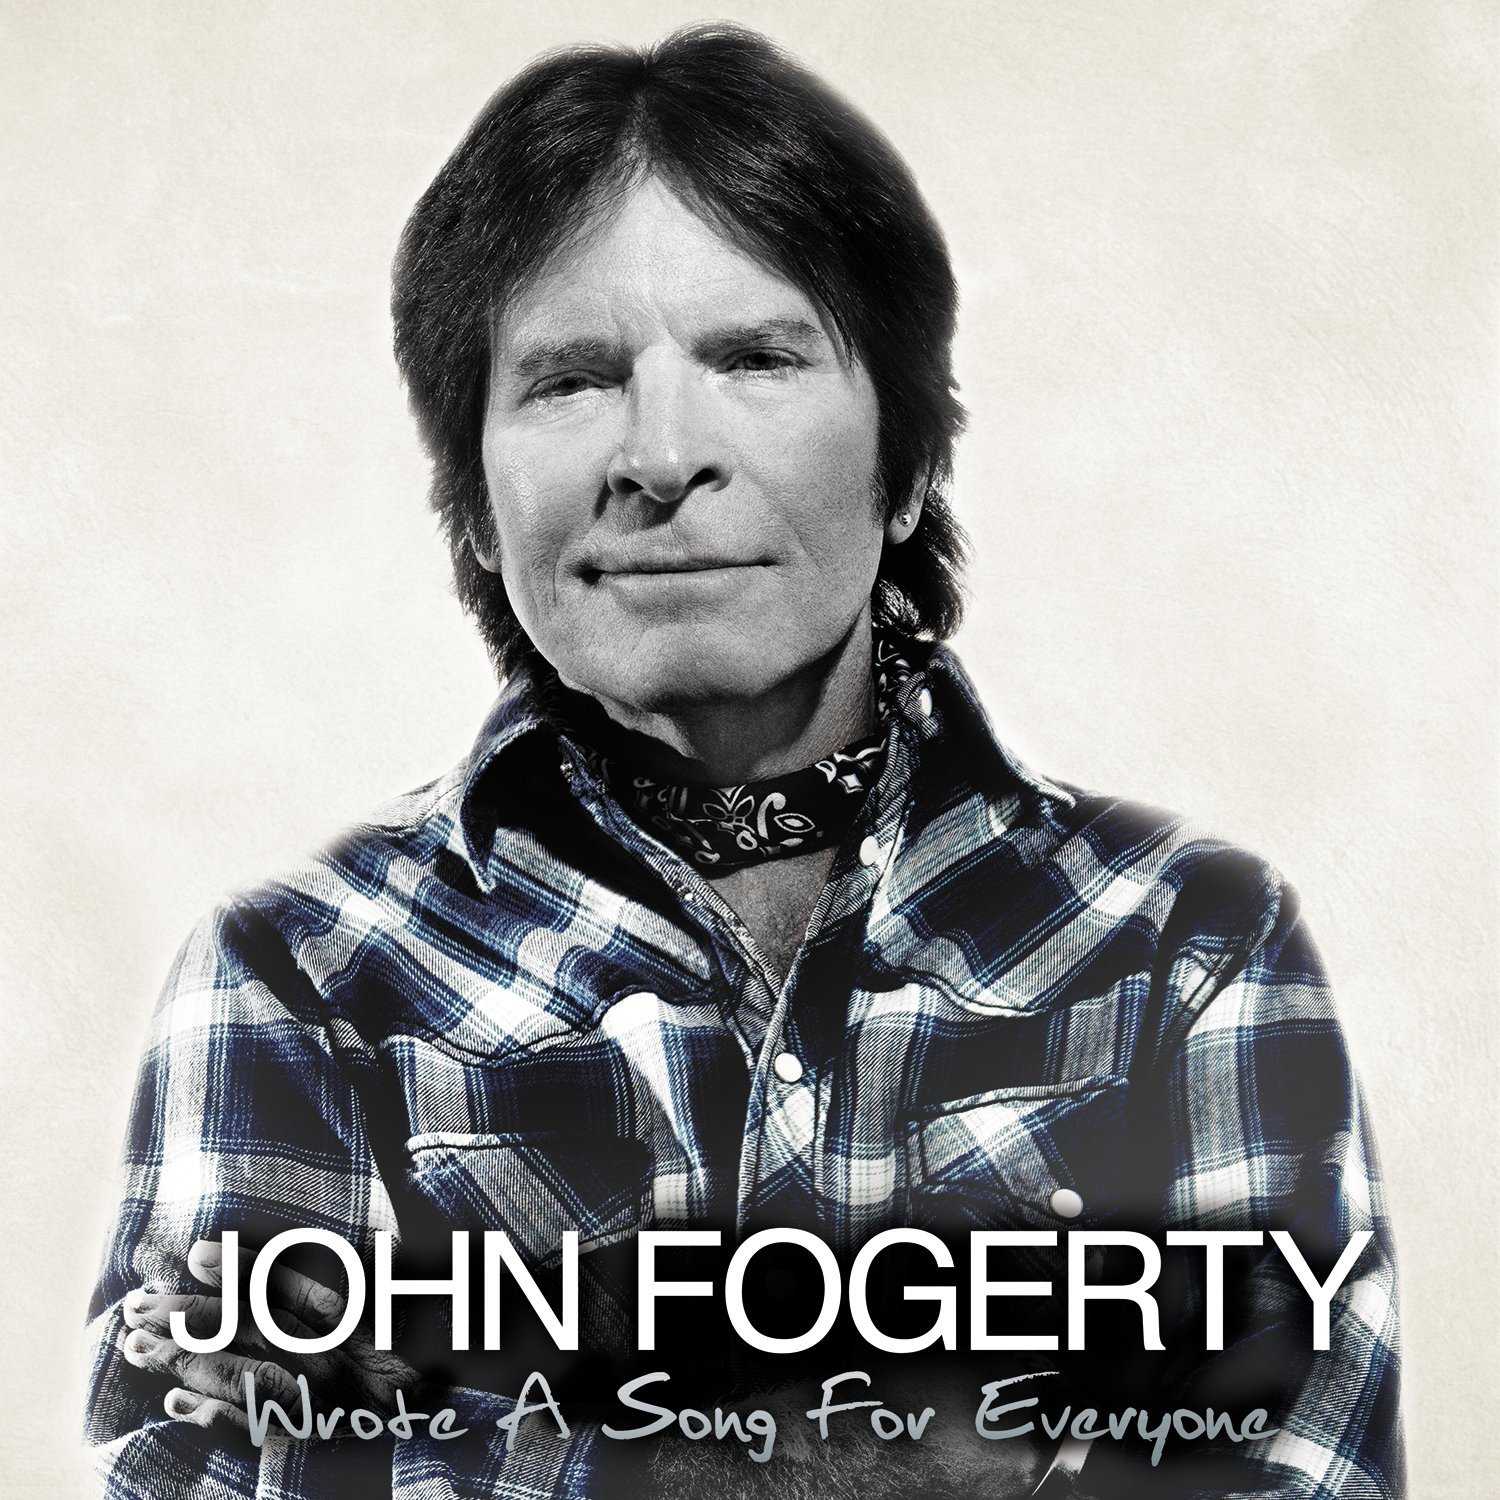 John Fogerty, Wrote A Song For Everyone | Album Review